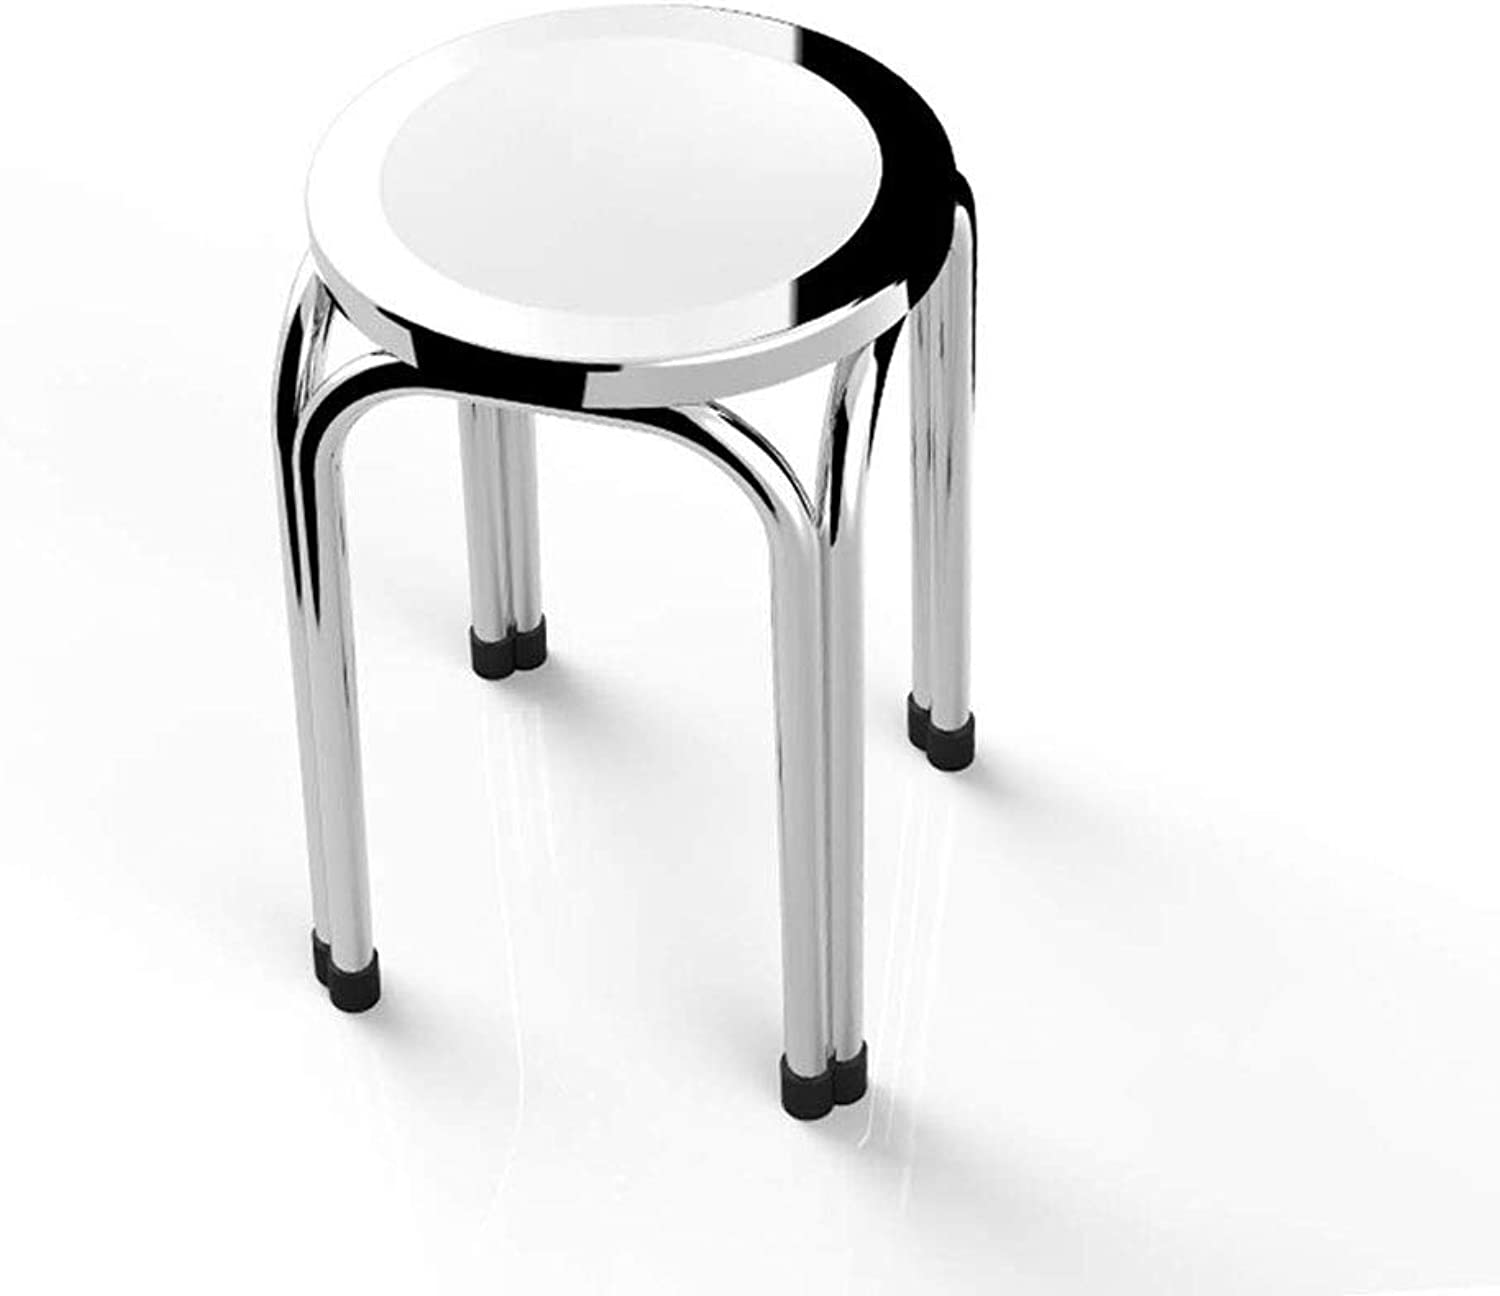 PTERS Stainless Steel Folding Stool Stool Table Stool Home Stool Round Dining Chair High Bench Experimental Bench Workshop Stool (Size   47cm)